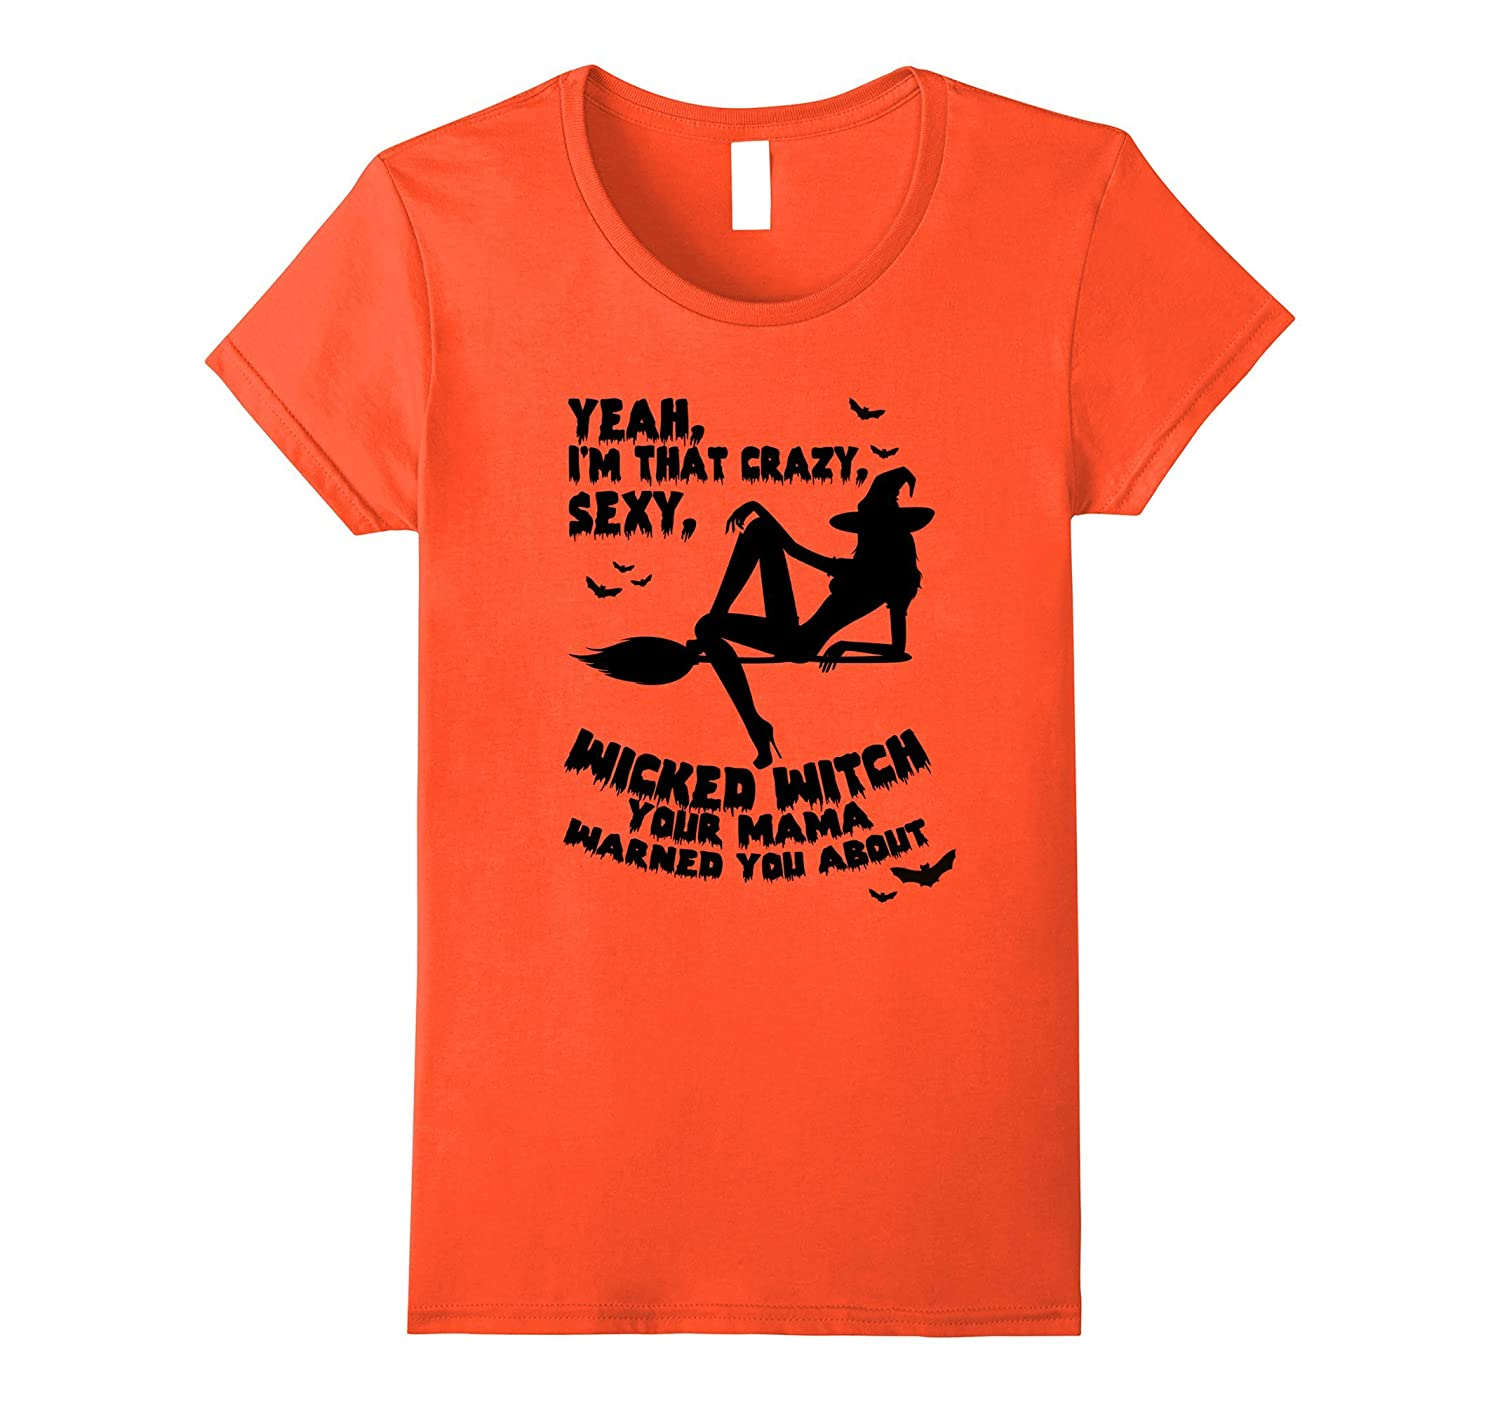 3341fa1698 Womens I'm That Crazy Sexy Wicked Witch Your Mama Warned You About-FL -  Sunflowershirt